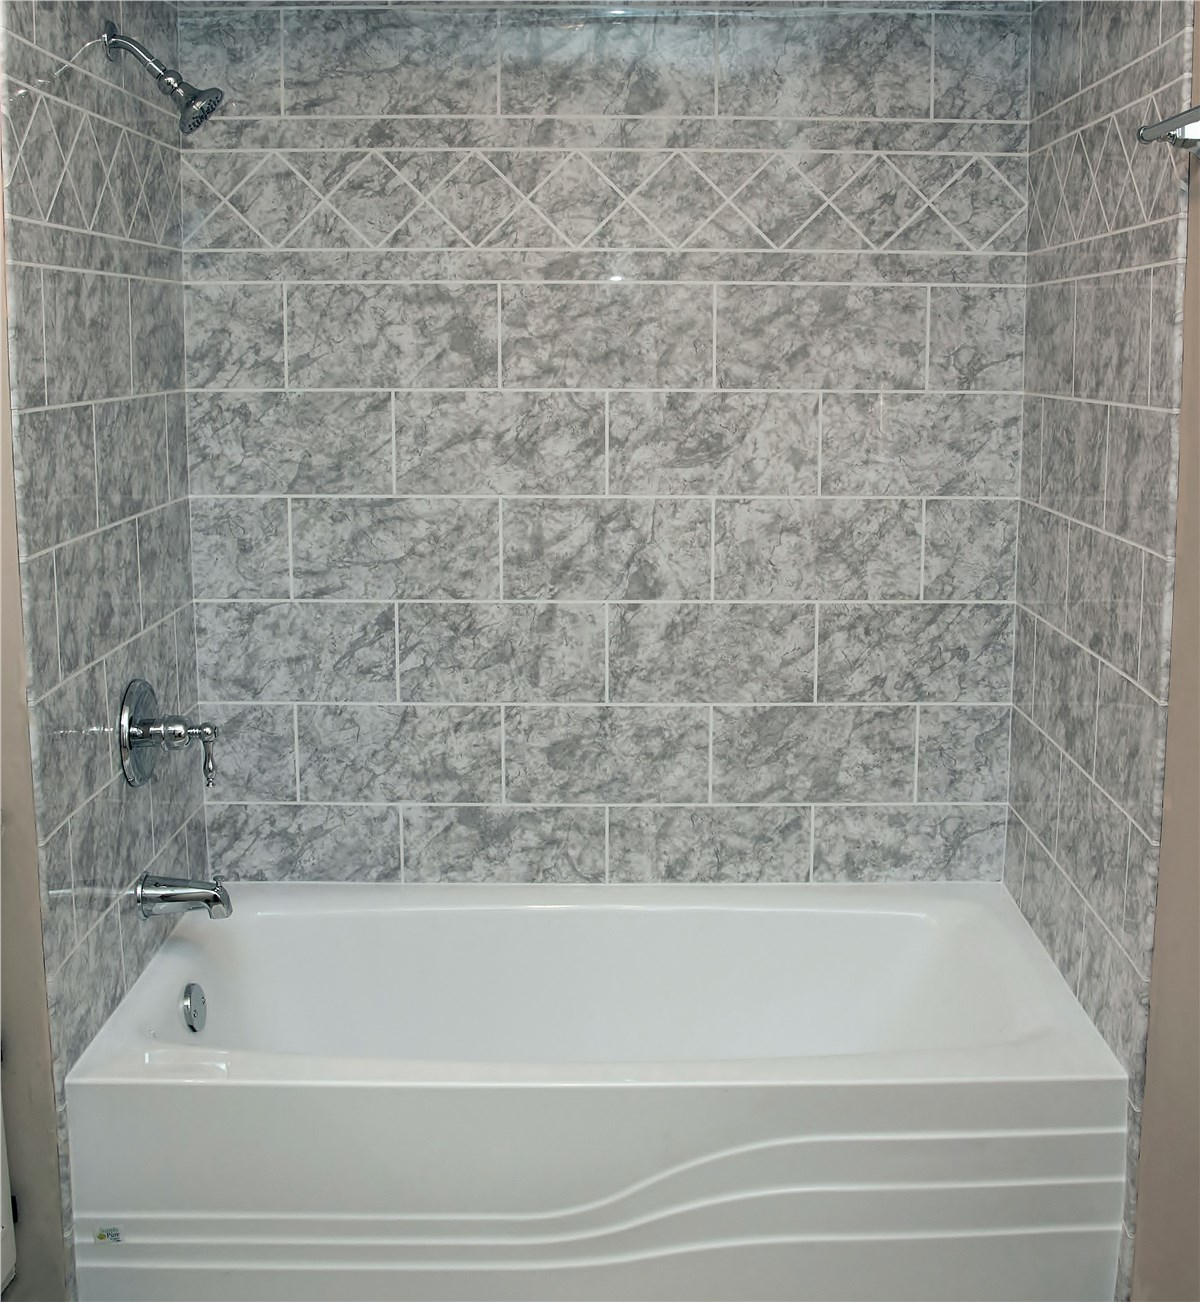 Shower Surrounds | North Texas Shower Wall Panels | Luxury ...